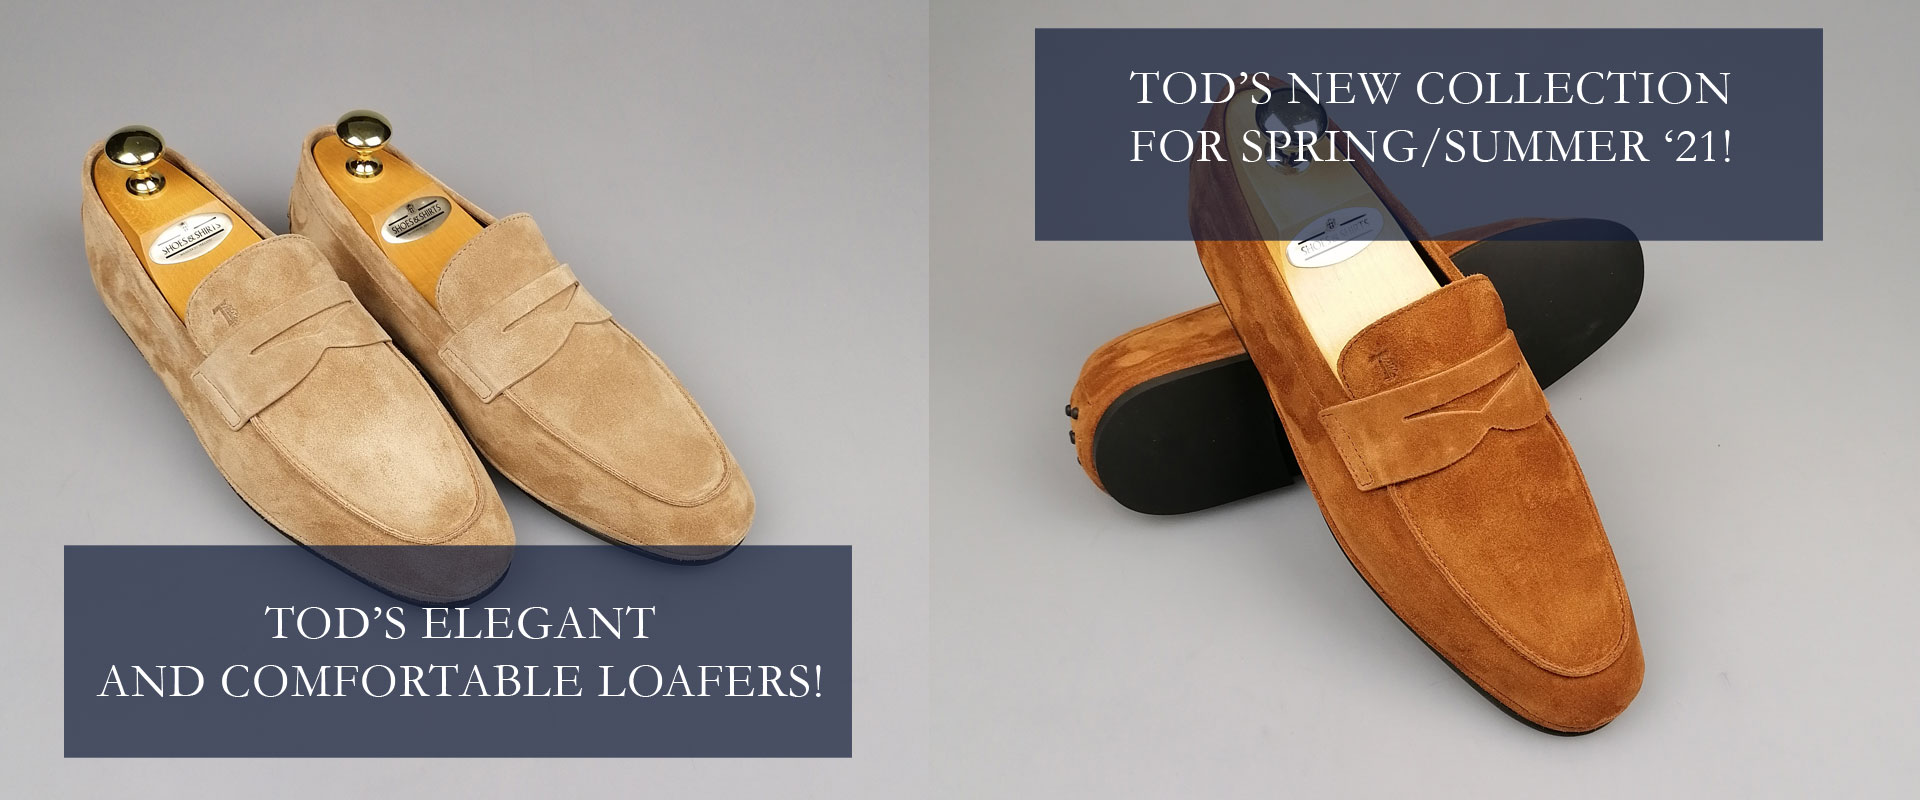 Tods ss21